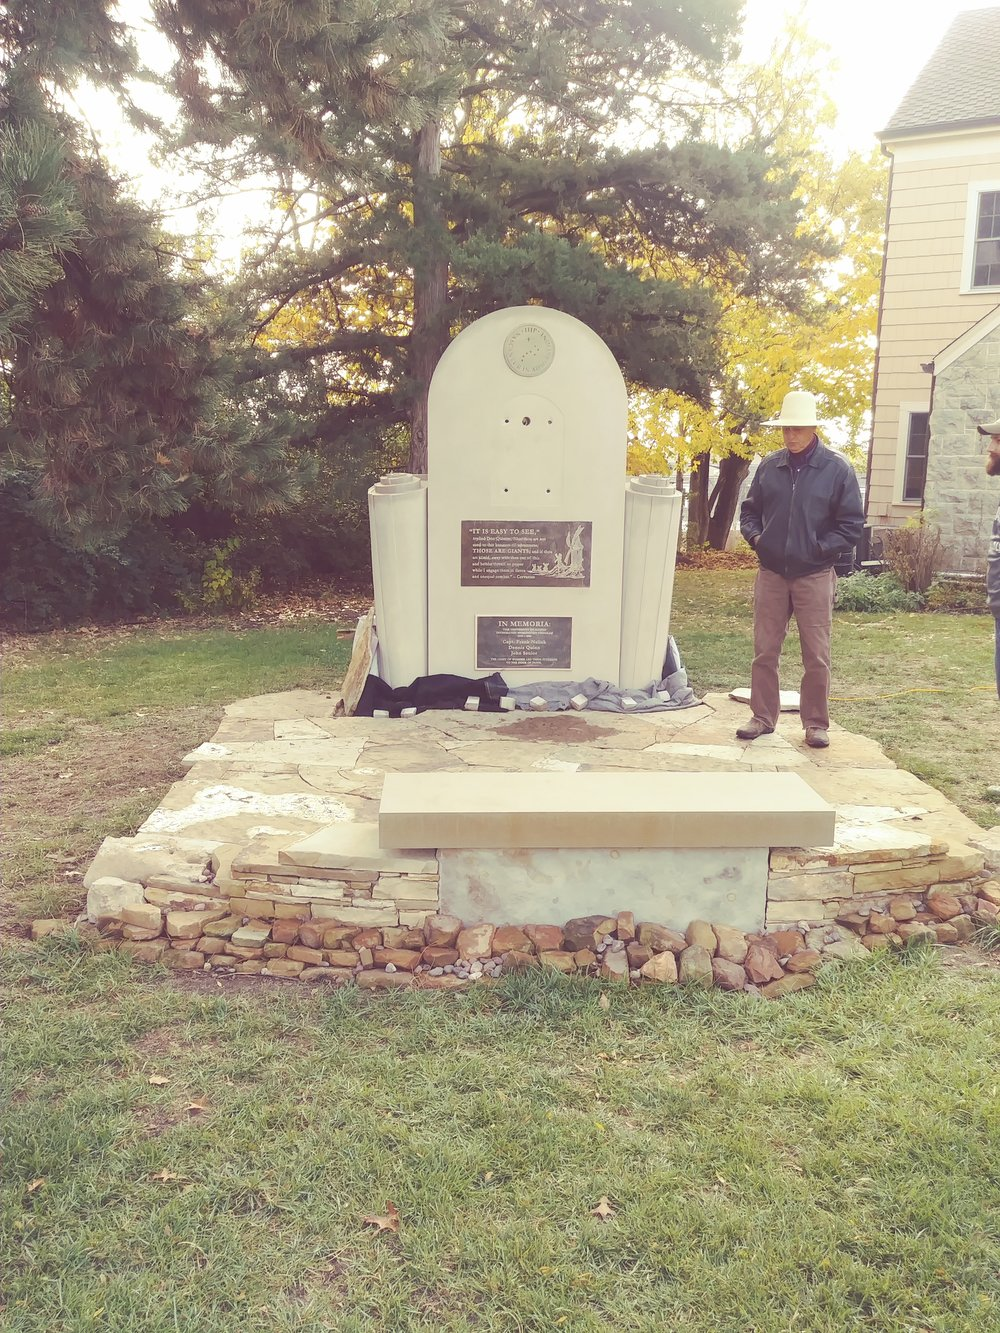 This is a larger picture with our esteemed Stoneworker, Keith Middlemas, standing beside the Memorial before Don Quixote was attached. St Lawrence Center is to the right, due south of the Memorial. To the left is the eastern tree line of the St Lawrence Center property.